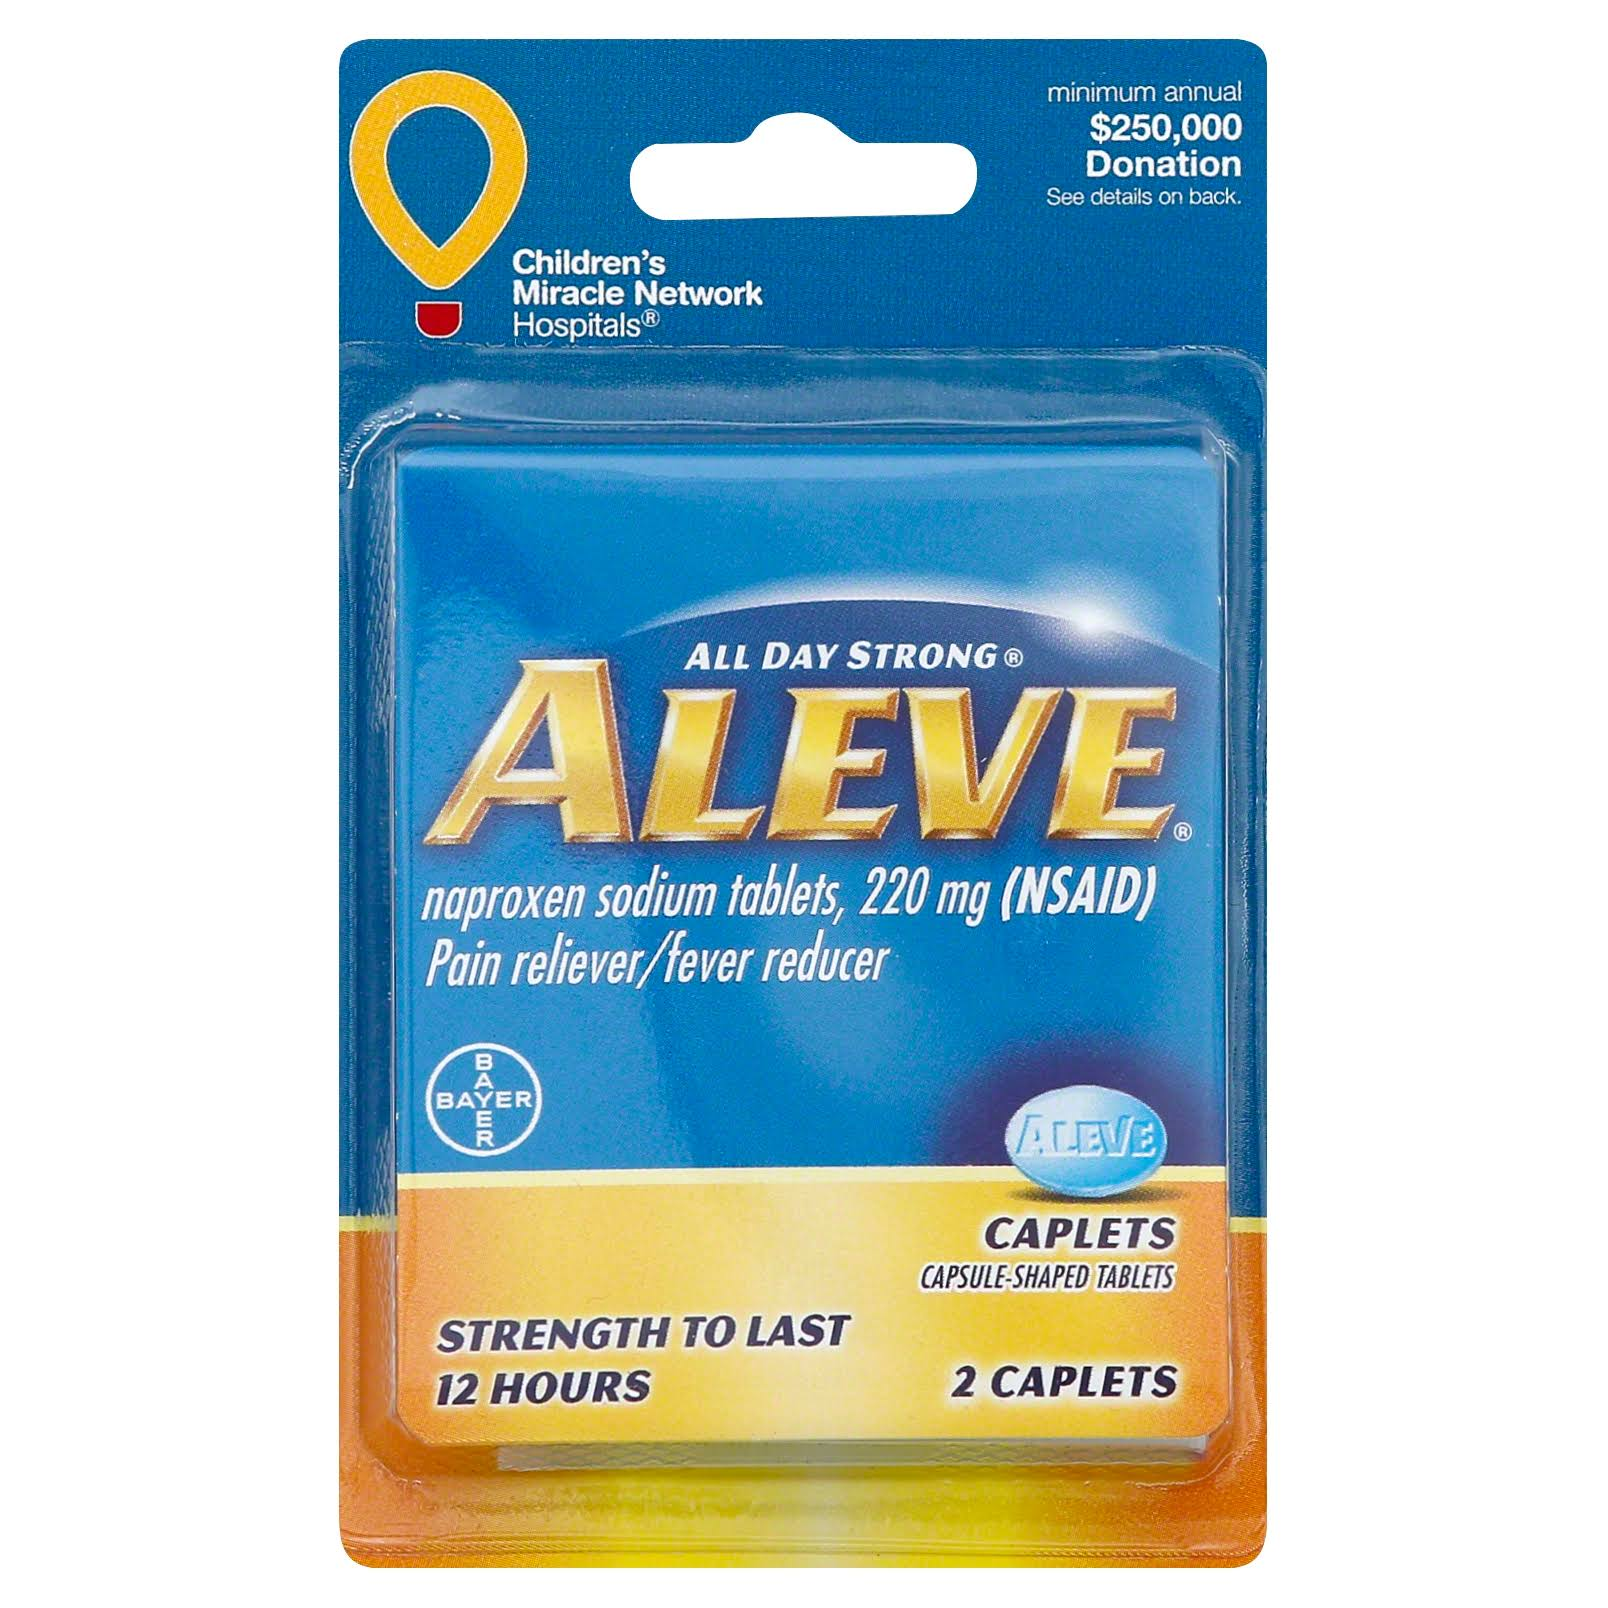 Aleve Pain Reliever